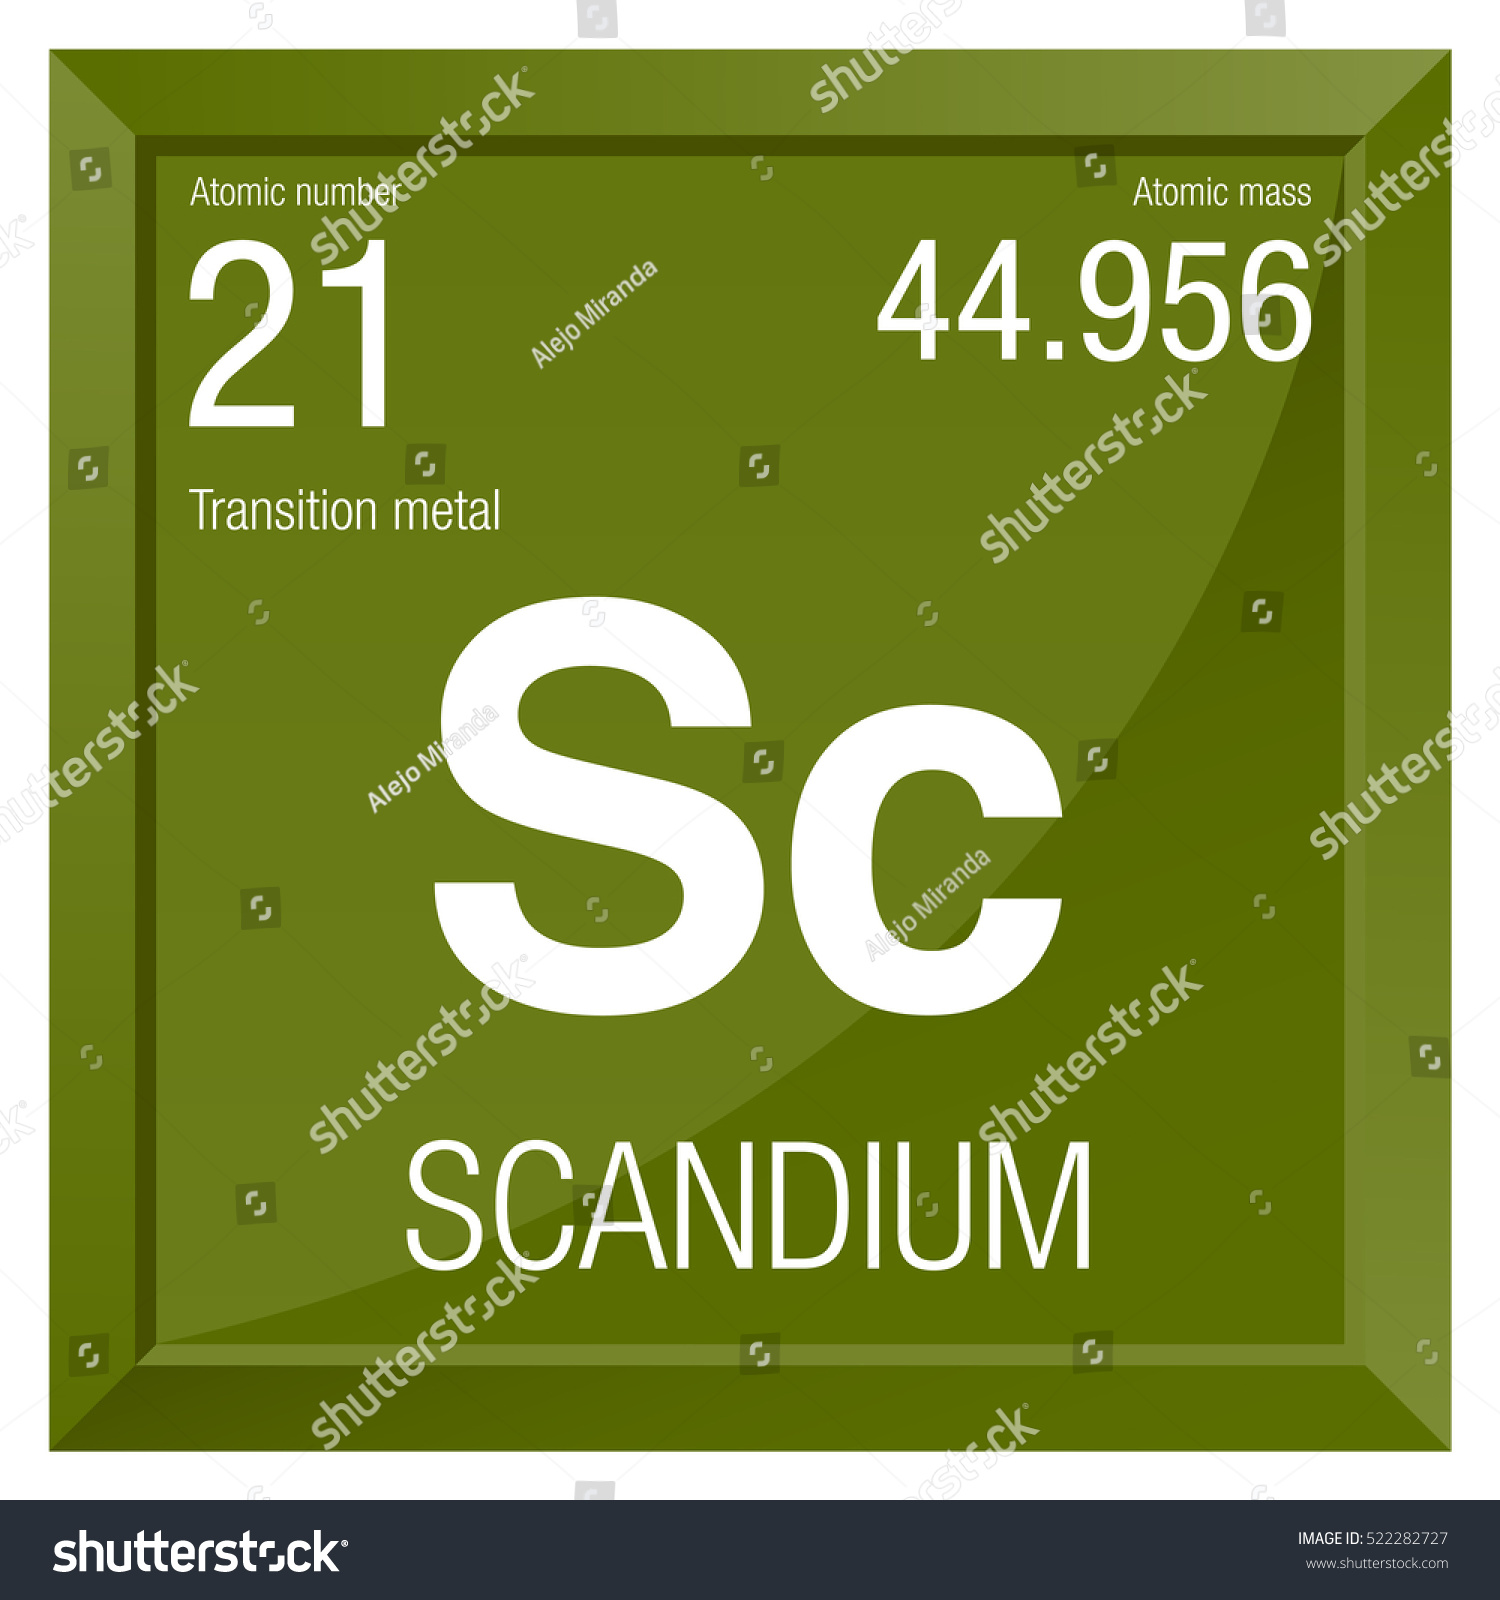 Scandium symbol element number 21 periodic stock vector 522282727 scandium symbol element number 21 of the periodic table of the elements chemistry gamestrikefo Images